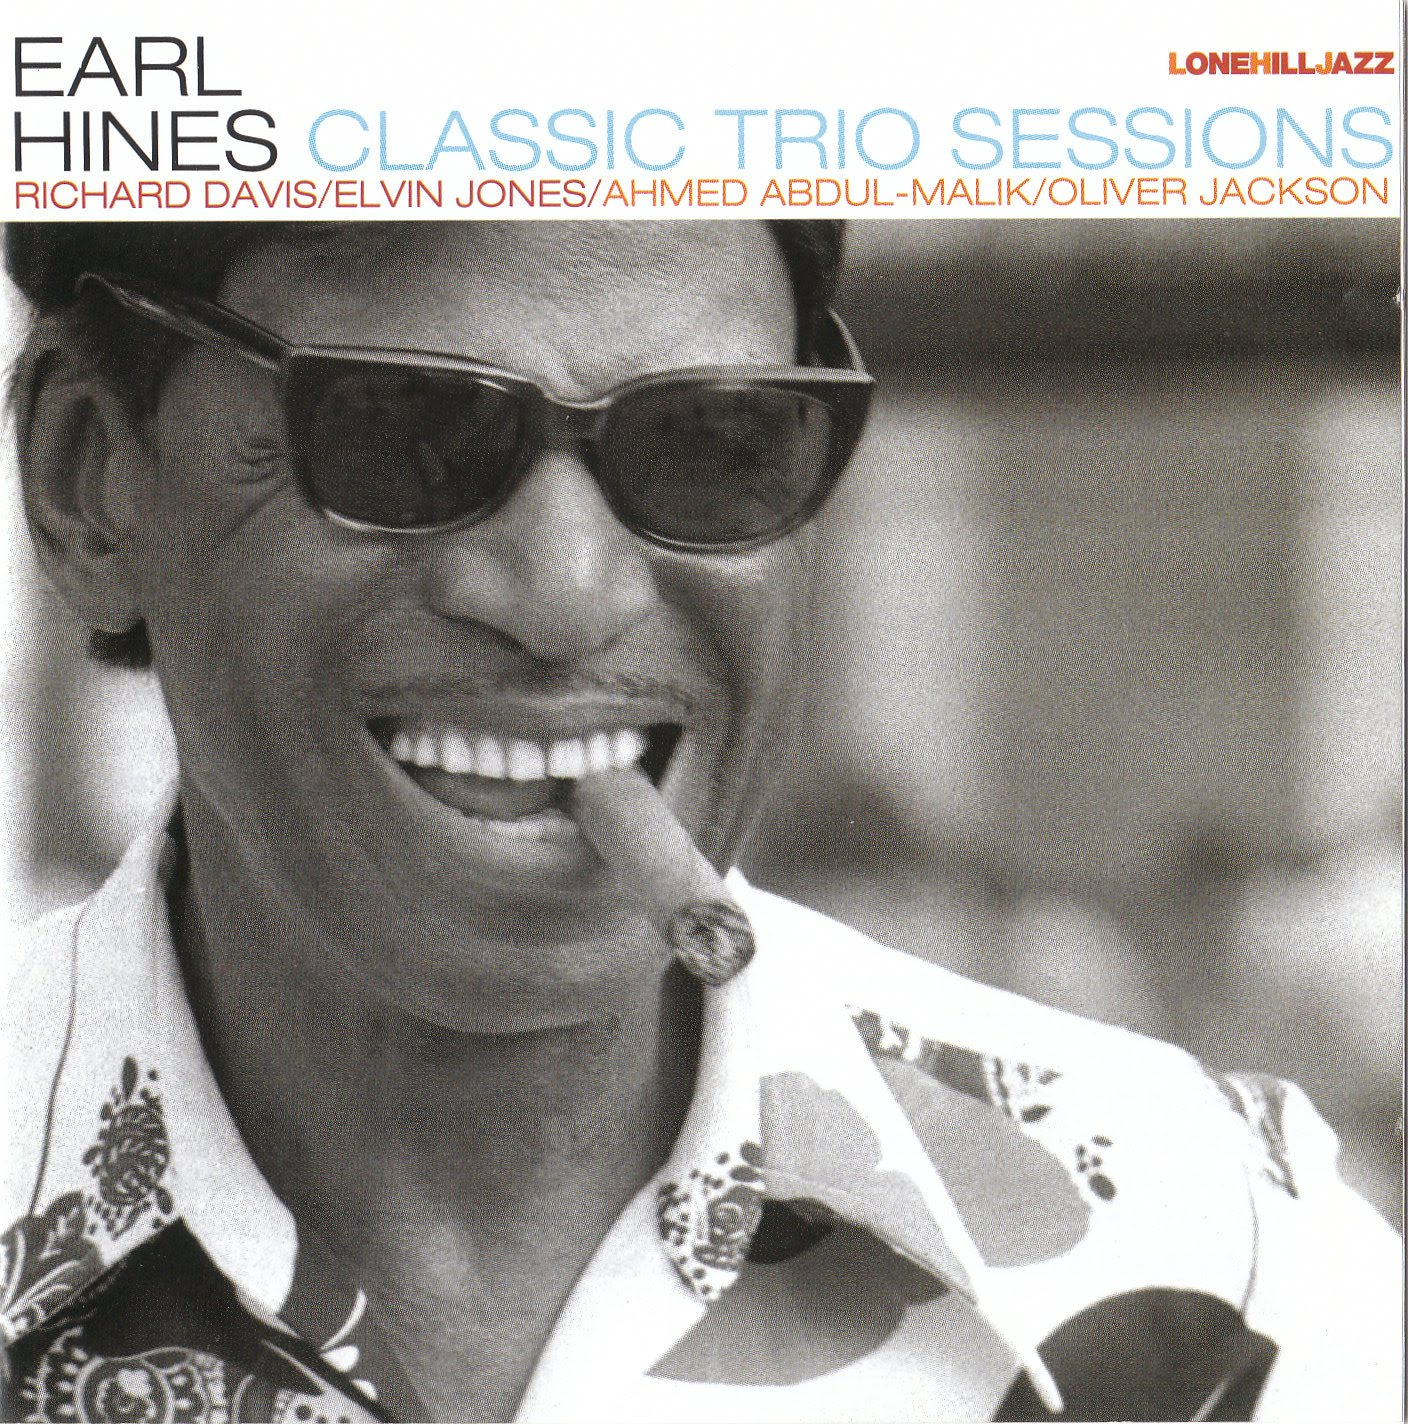 THE COVER PROJECT: June 2010 Earl Hines